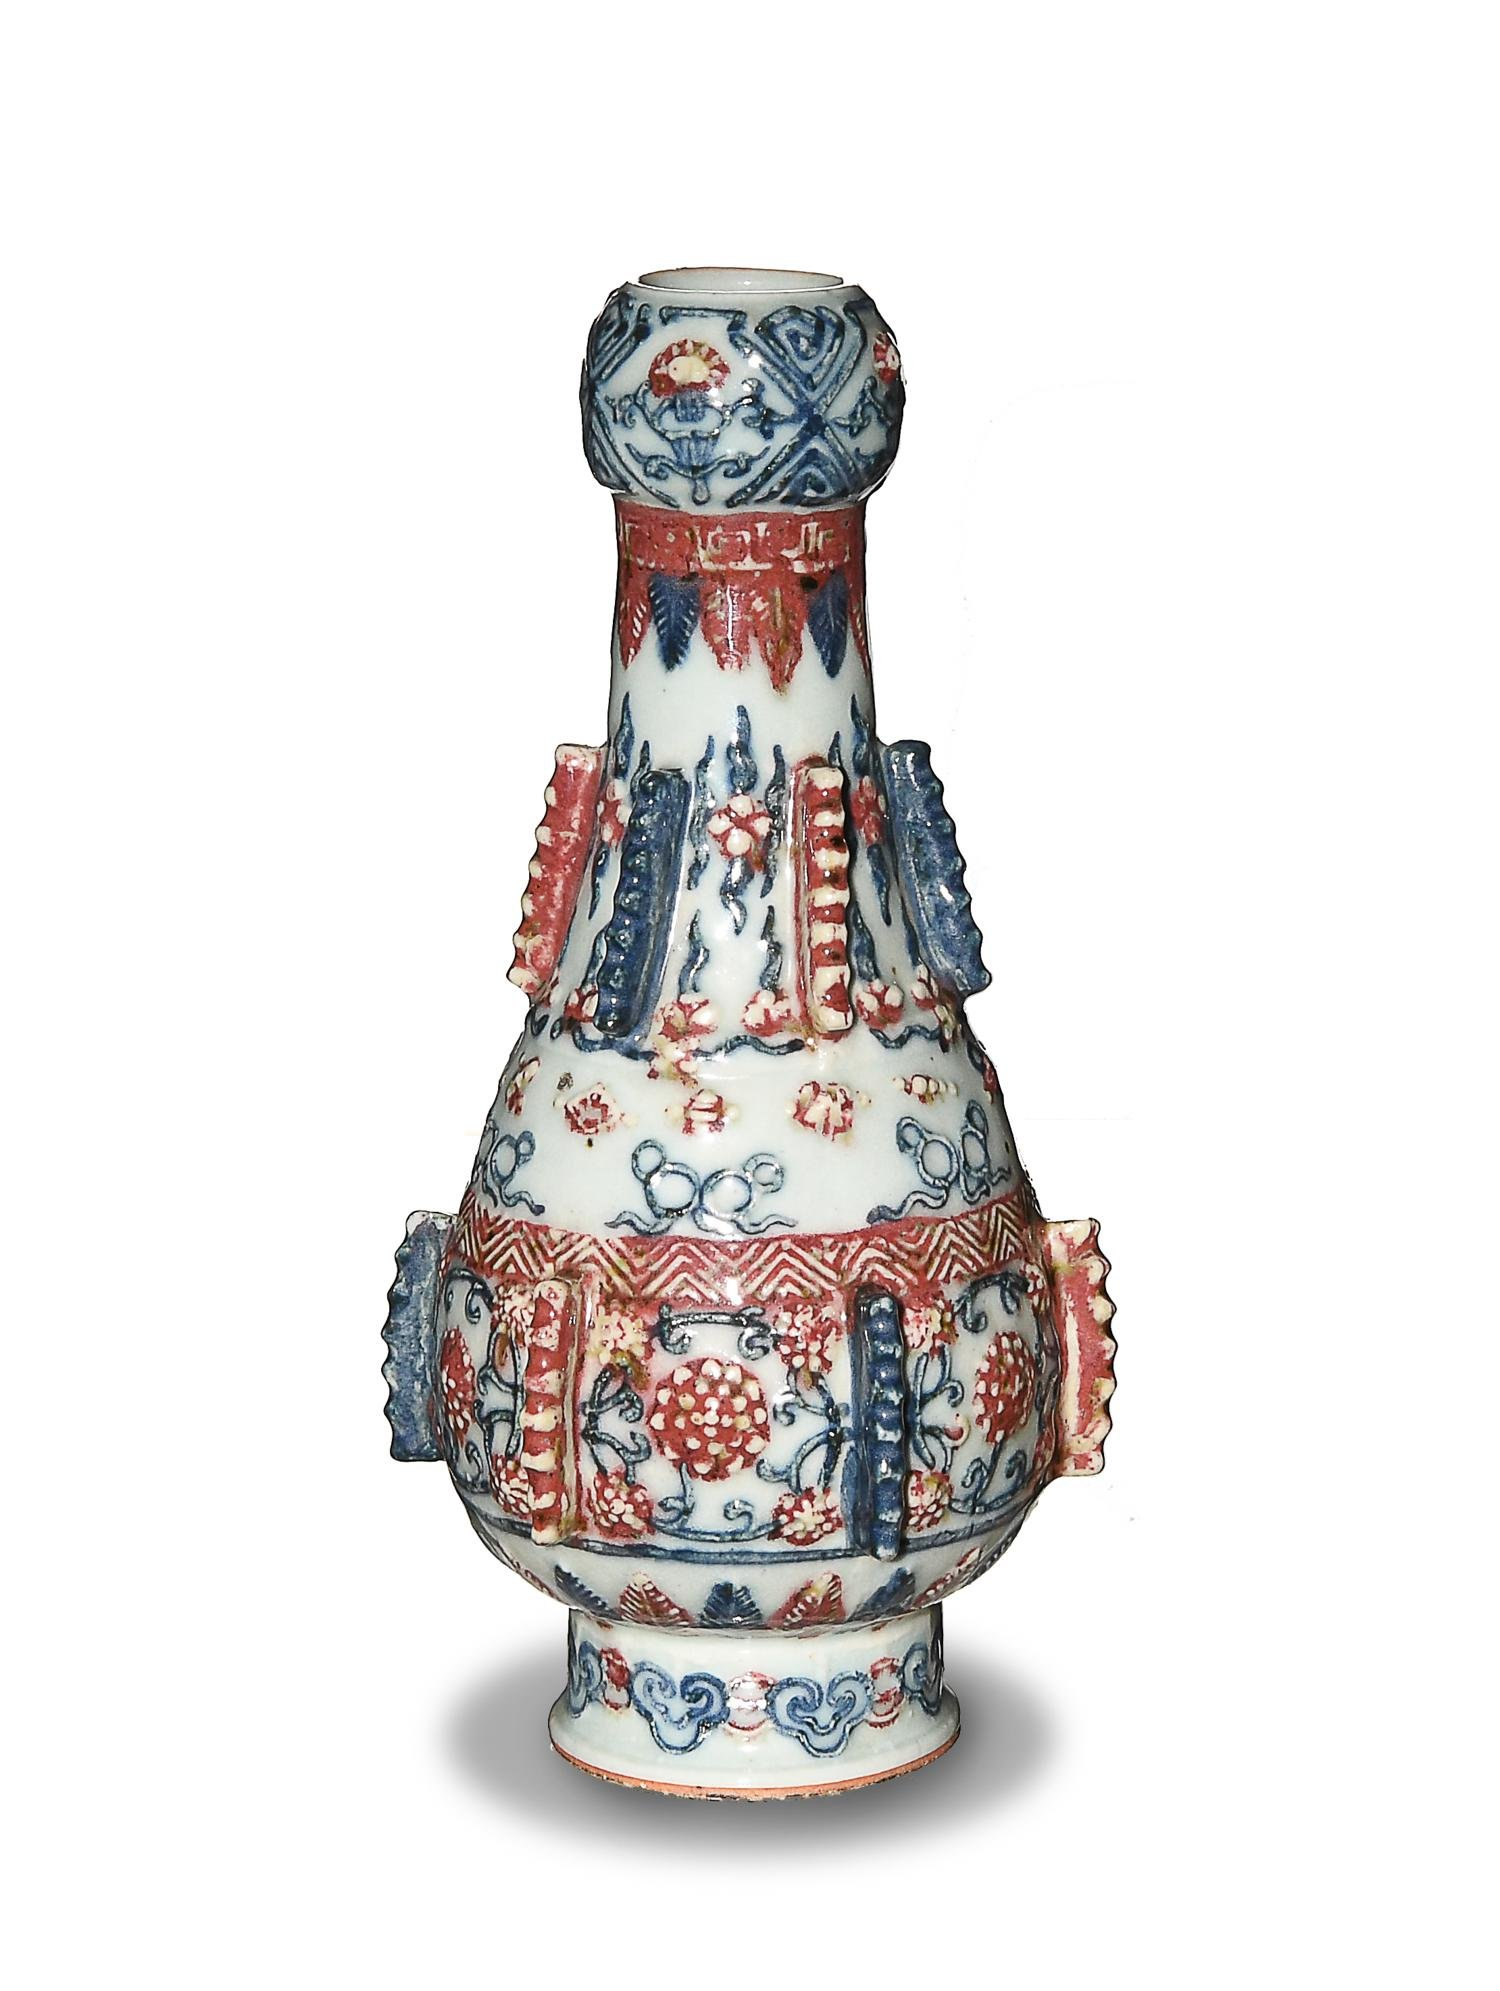 Chinese Blue and Red Garlic Head Vase, 19th Century